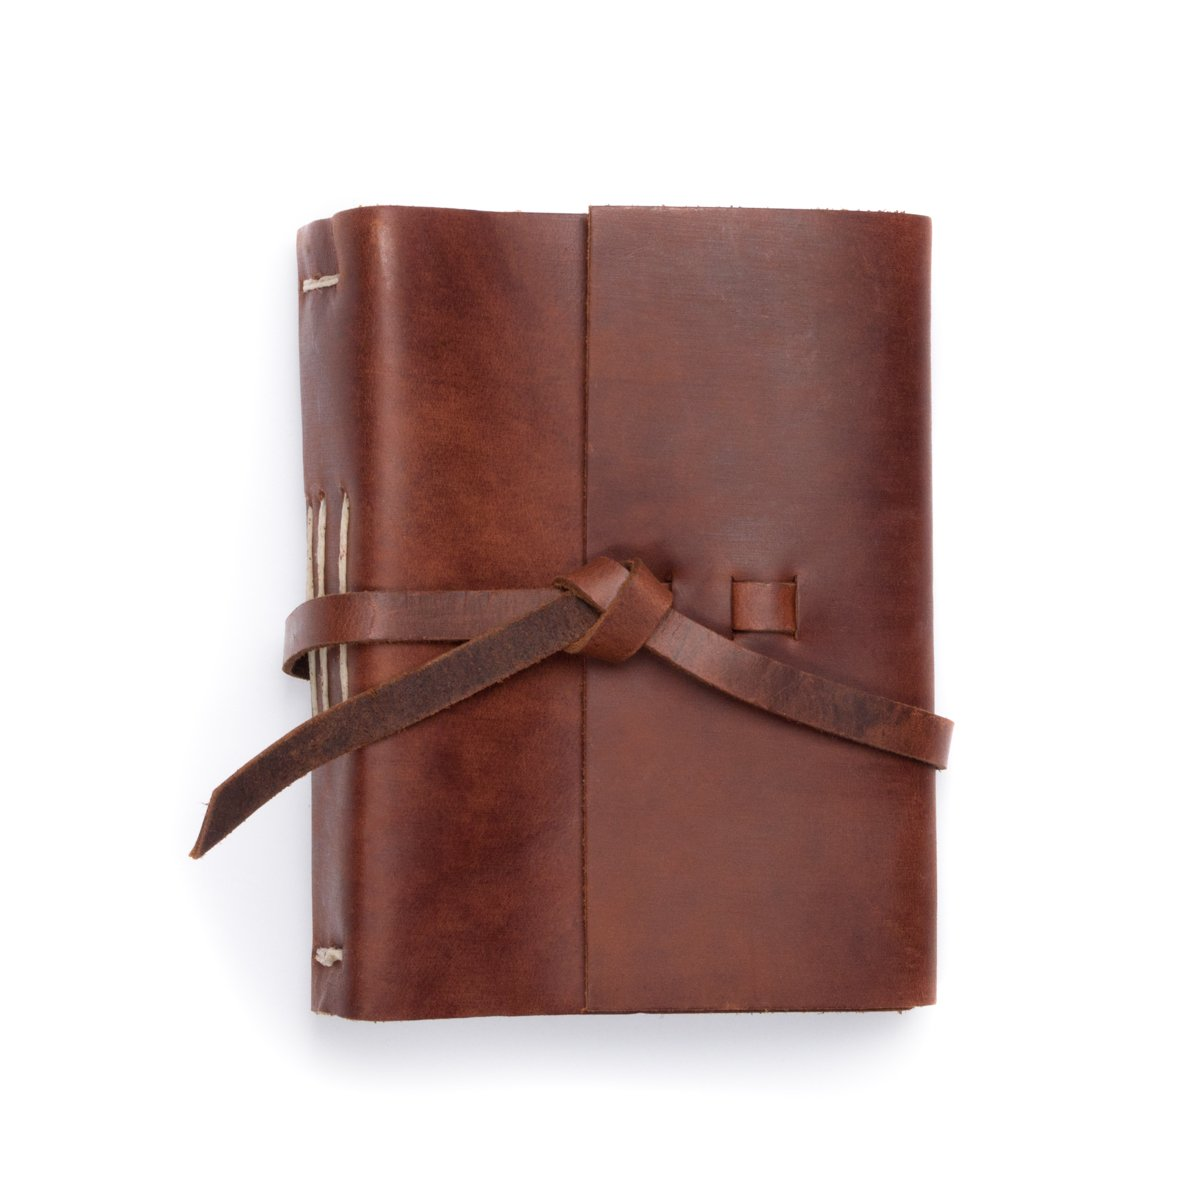 Photo Album Leather In Saddle, Rustico's Journey holds 4X6 Photo's - Made in USA